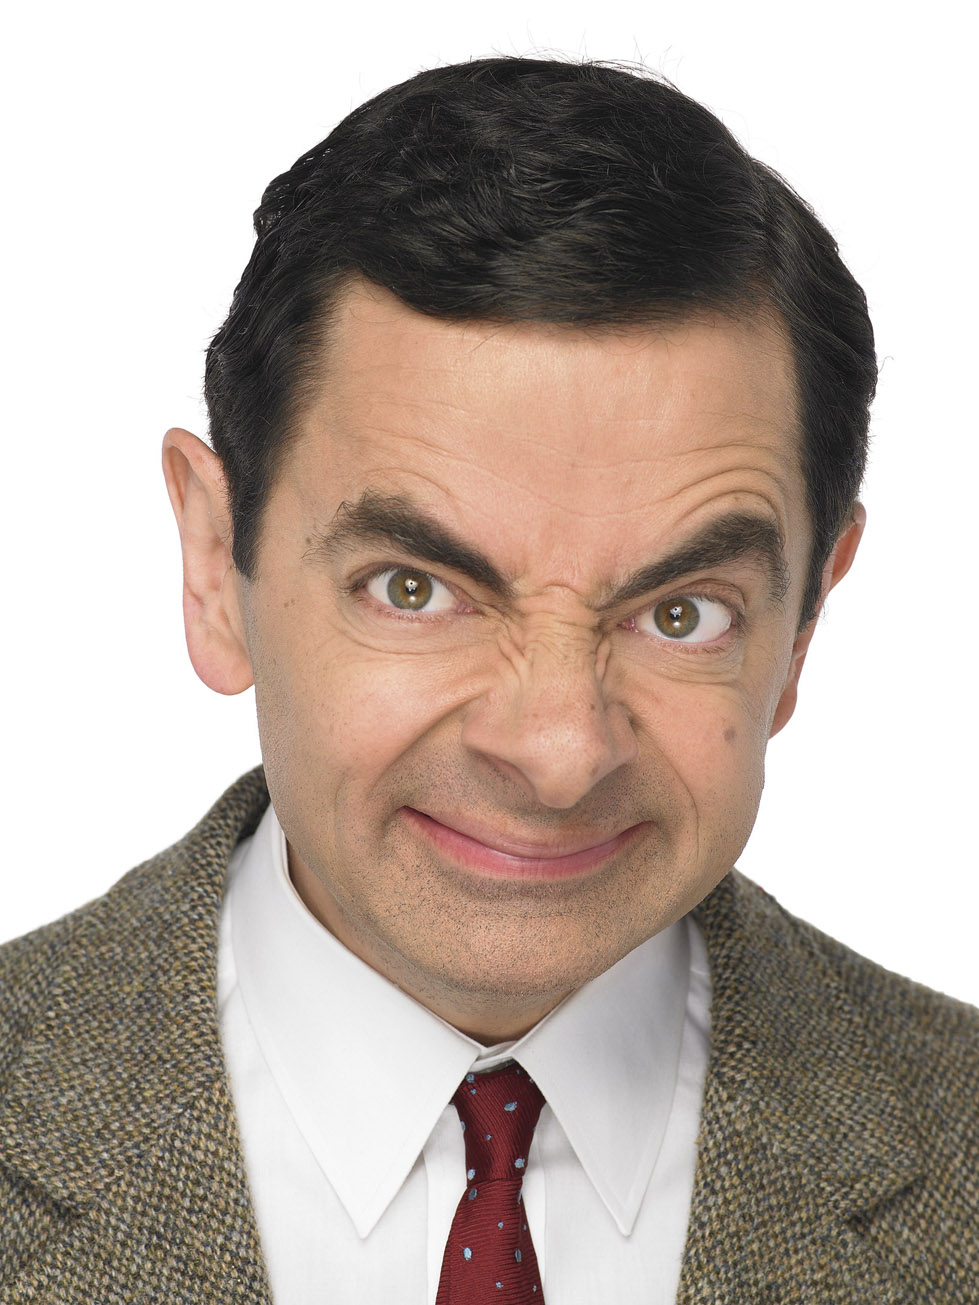 Rowan Atkinson Needs His Own TV Show Seven Inches Of